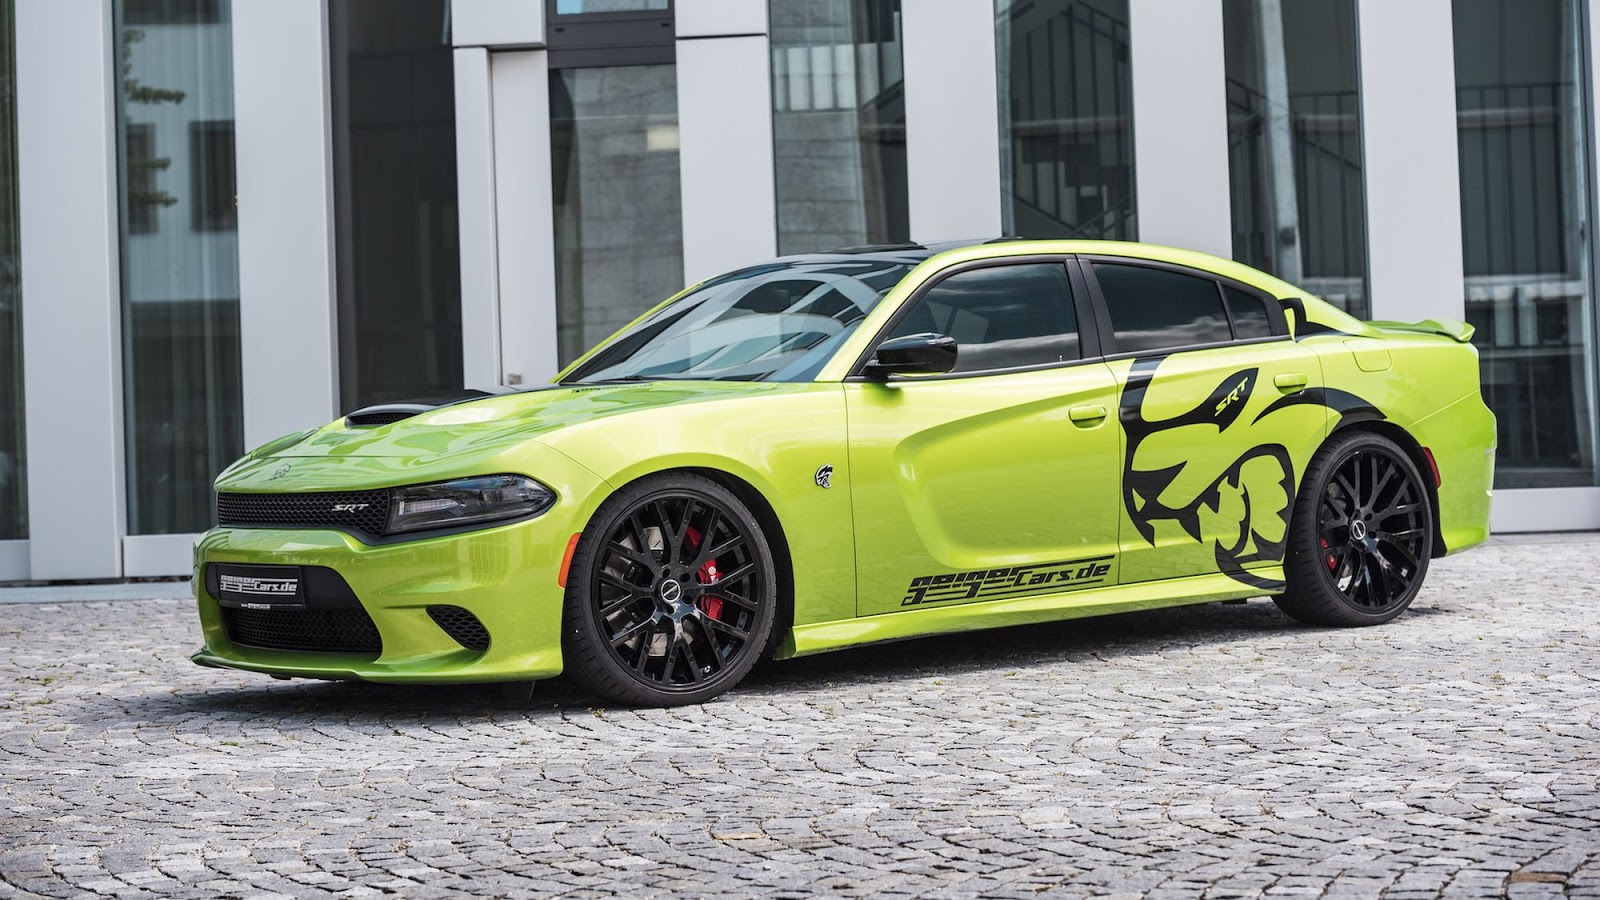 geigercars modifies roaring charger srt hellcat up to 782 hp. Black Bedroom Furniture Sets. Home Design Ideas